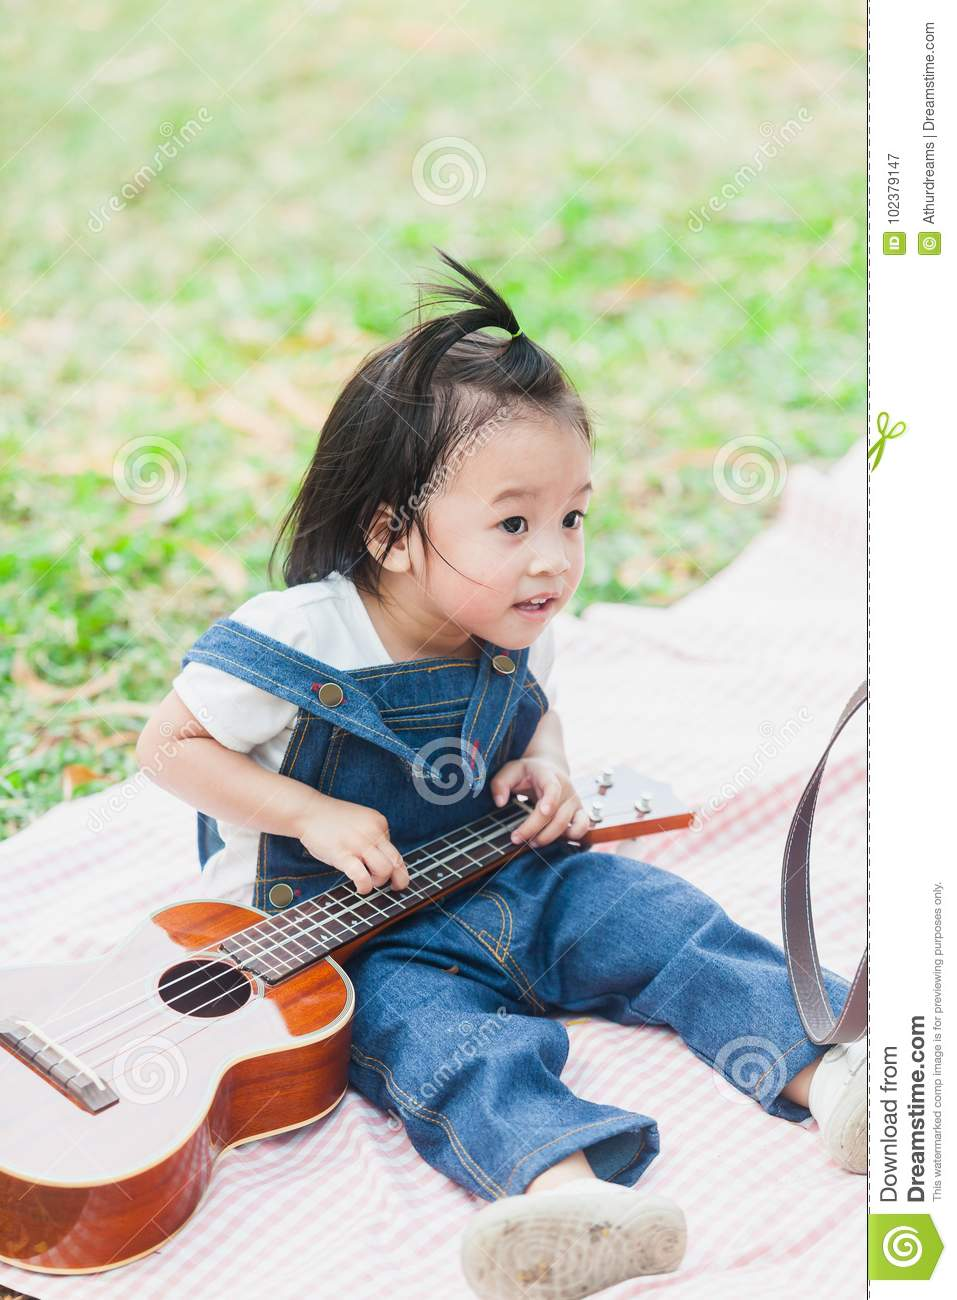 Cute Baby Girl 2 Year Old Play On Picnic Blanket Stock Image